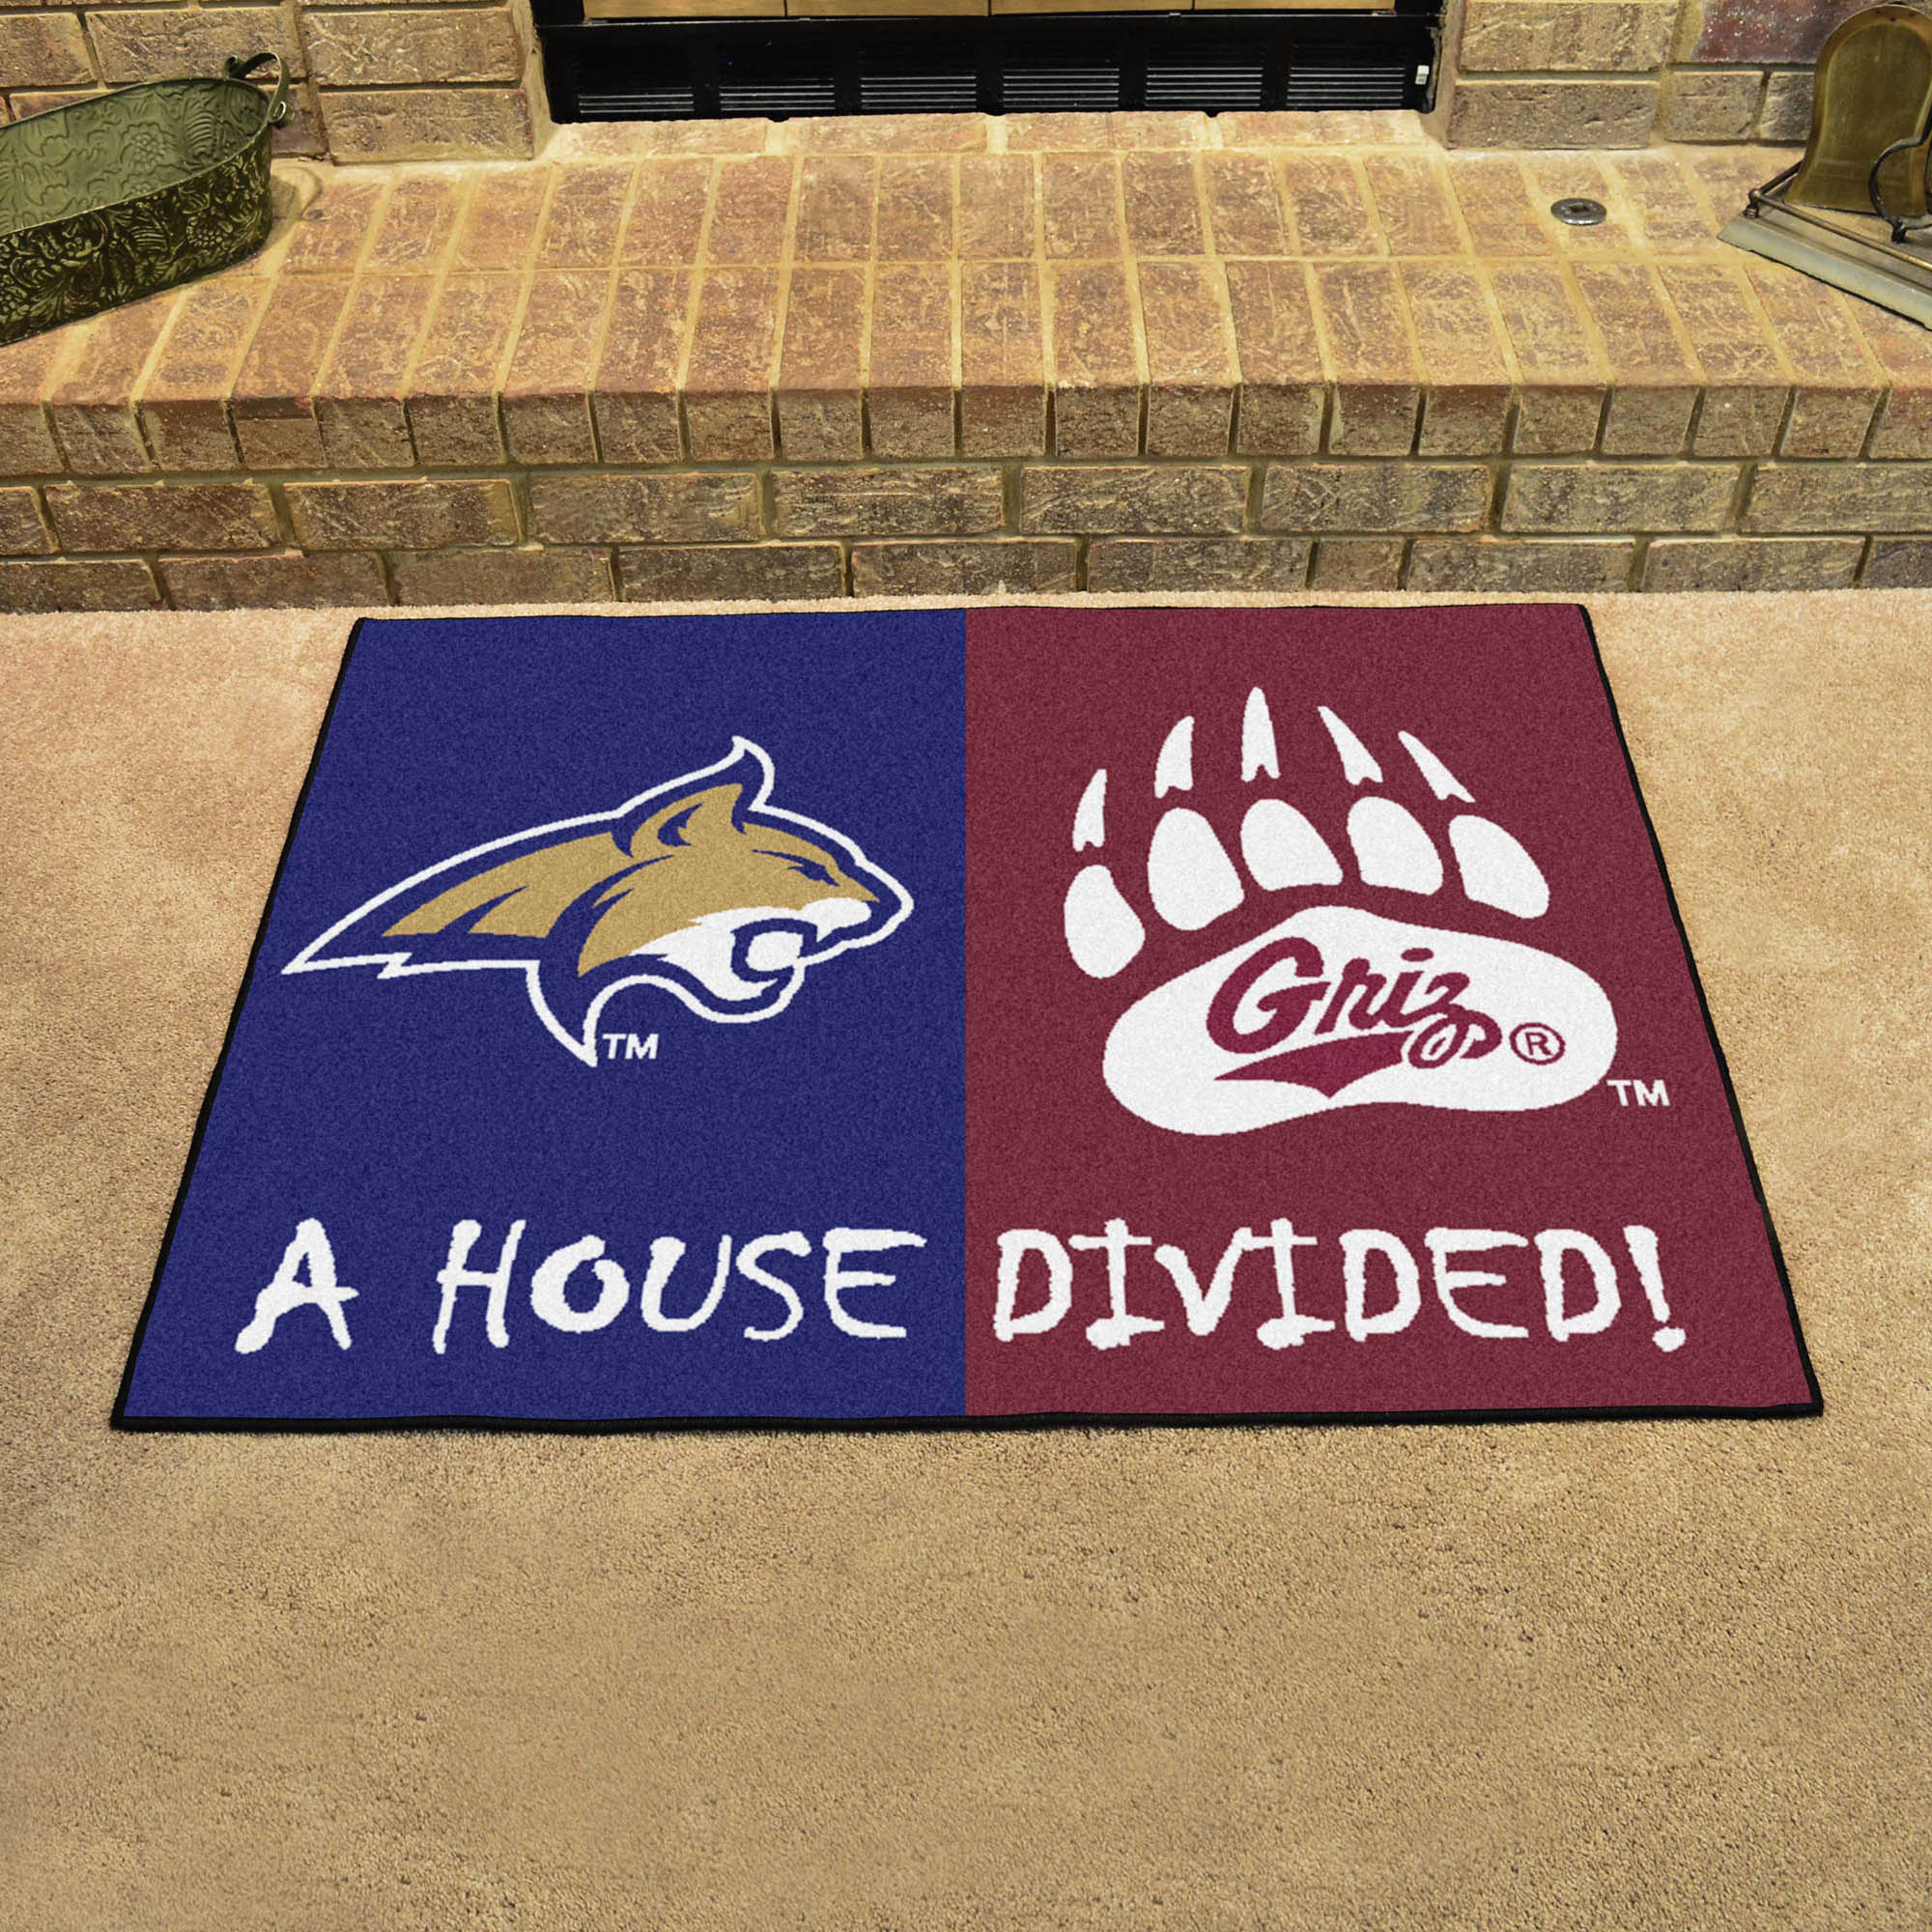 NCAA House Divided Rivalry Rug Montana State Bobcats - Montana Grizzlies